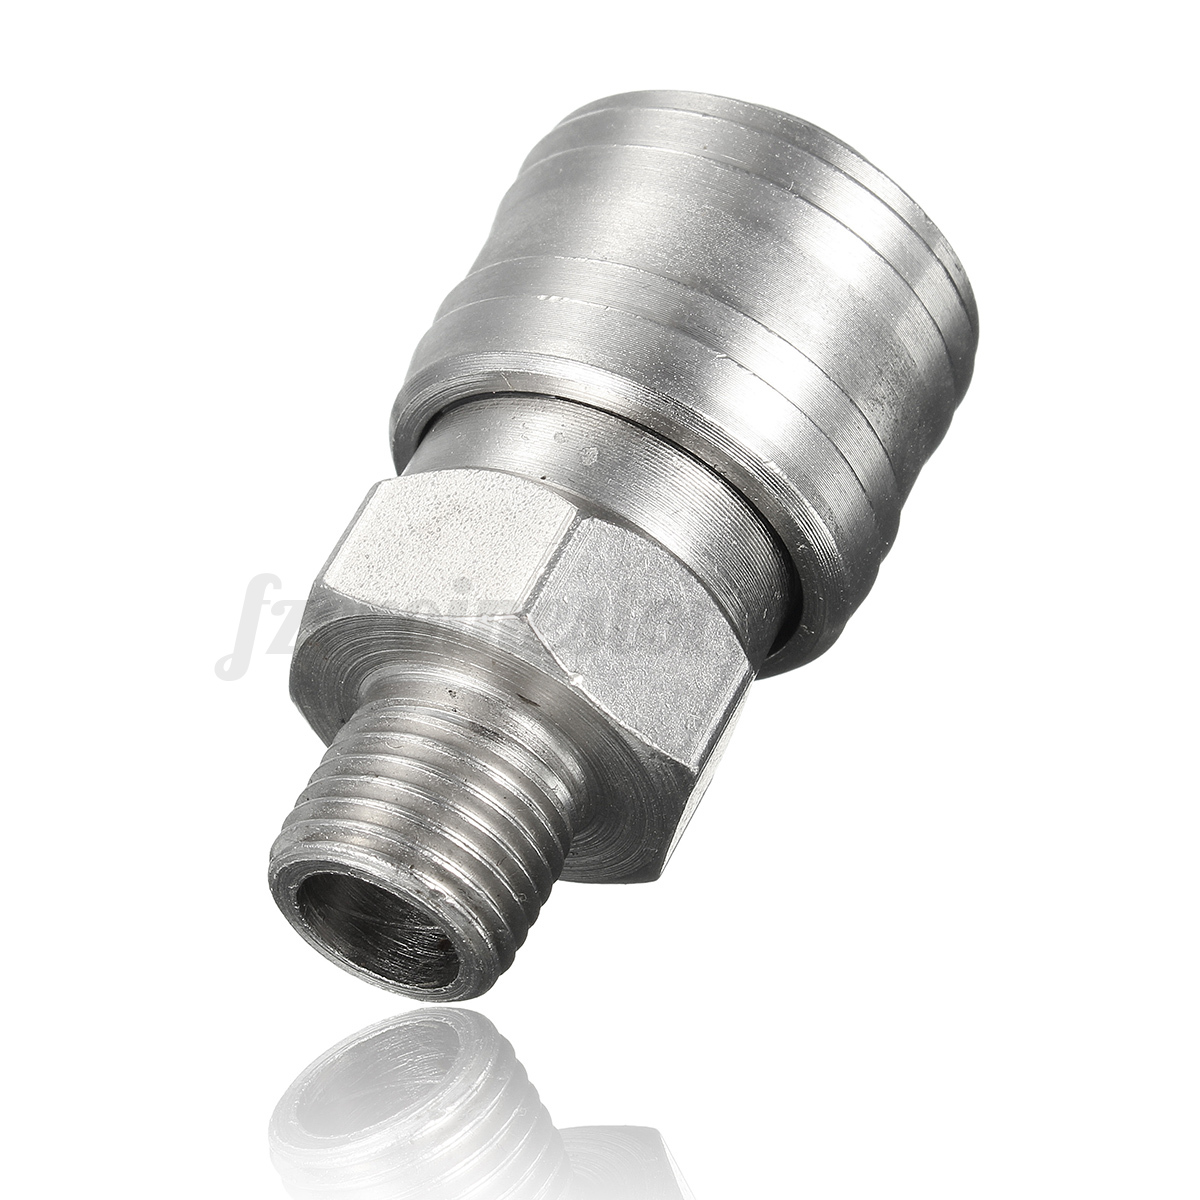 Air line hose fittings compressor connectors male female